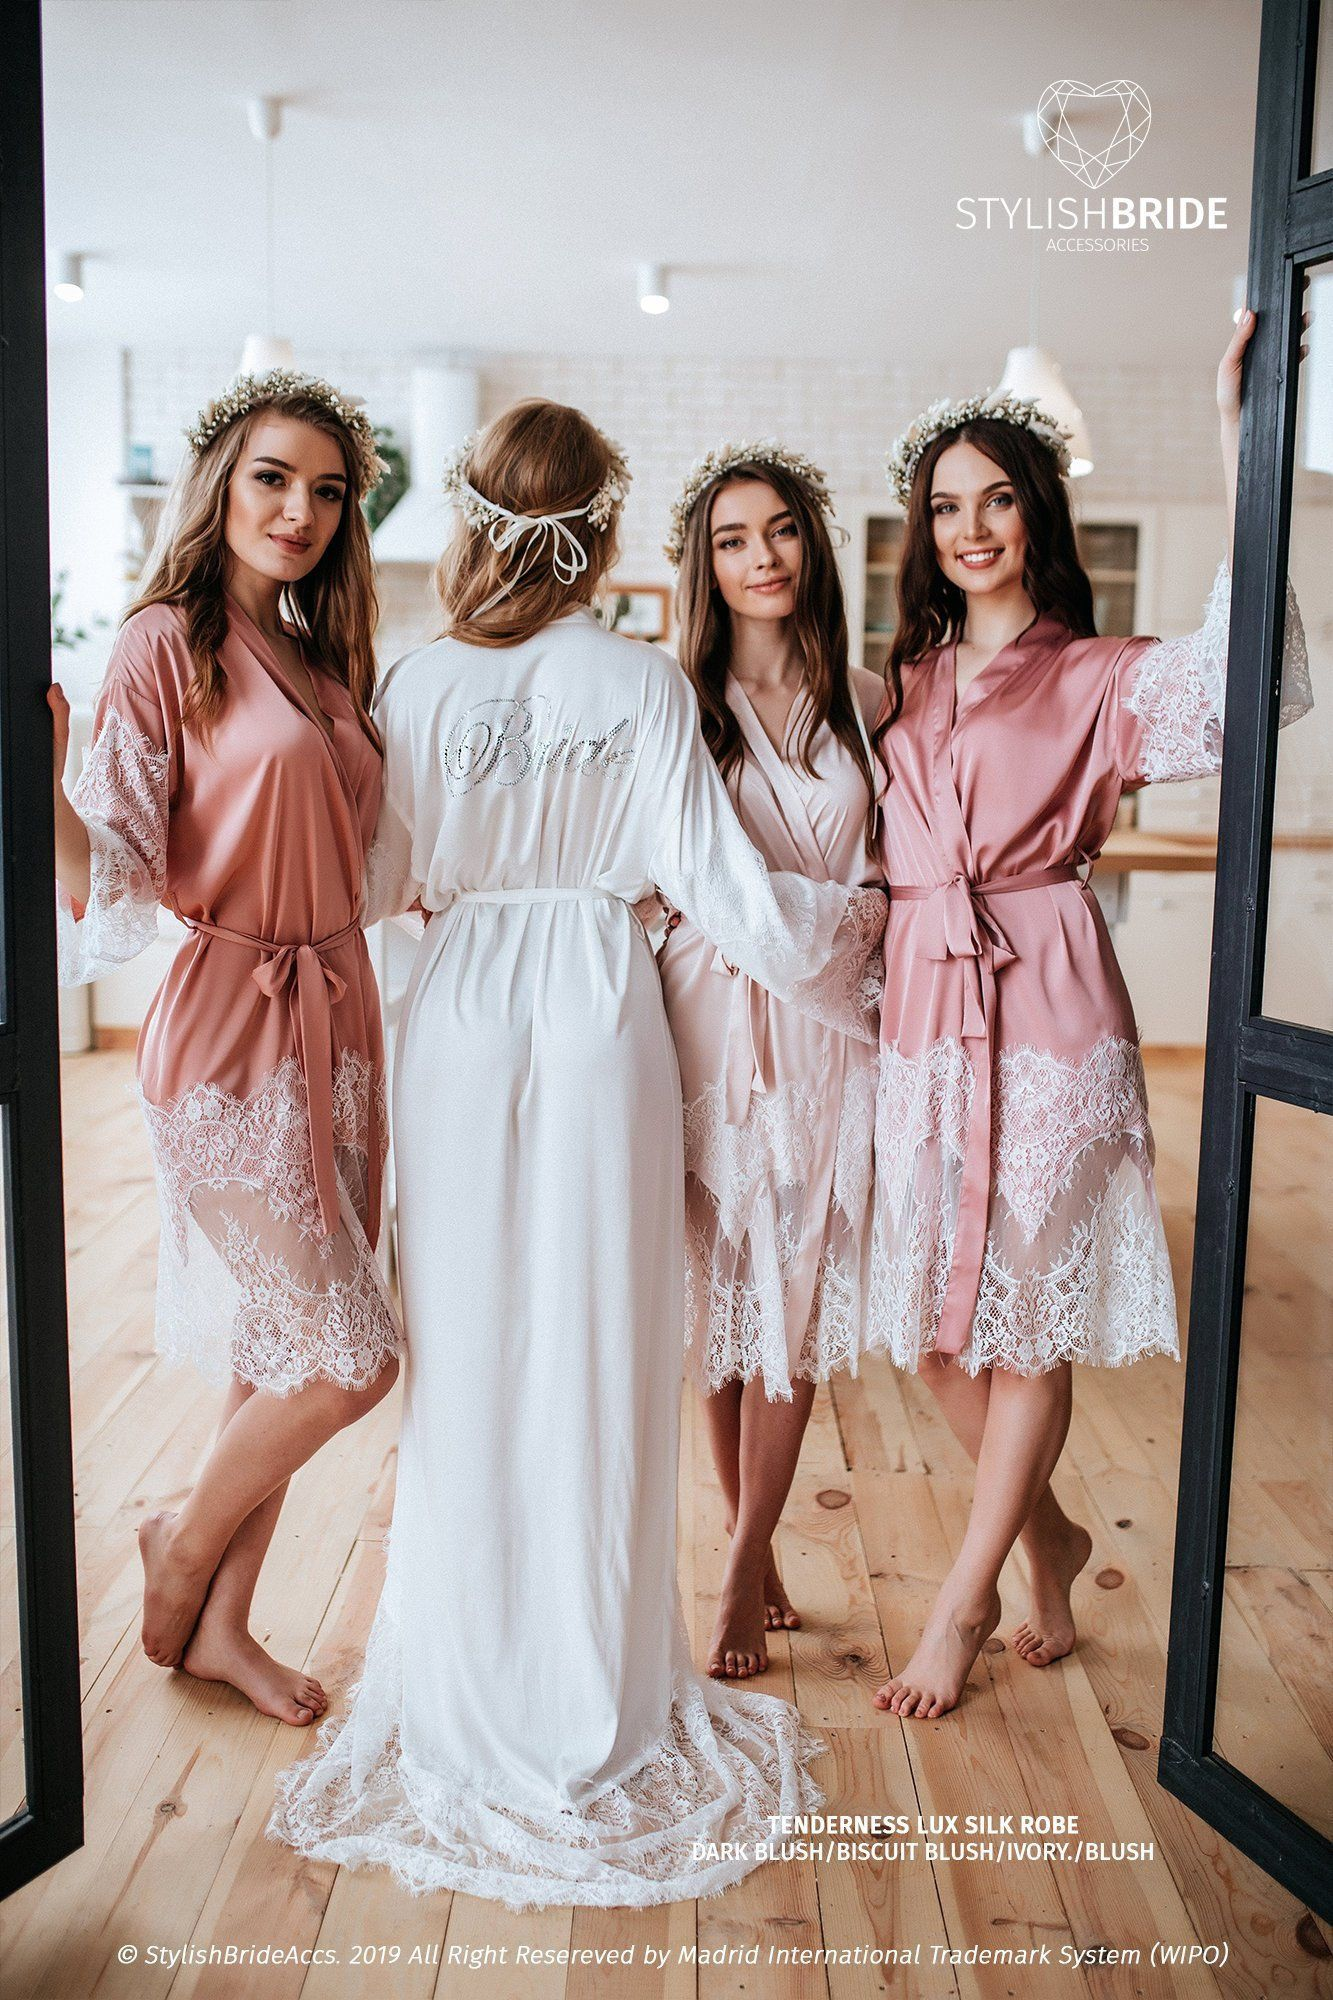 Personalized Crystal on the Back Blush Bridesmaid Robes, Customized Bridesmaid Robes, /TENDERNESS/ Embellished Bride on back